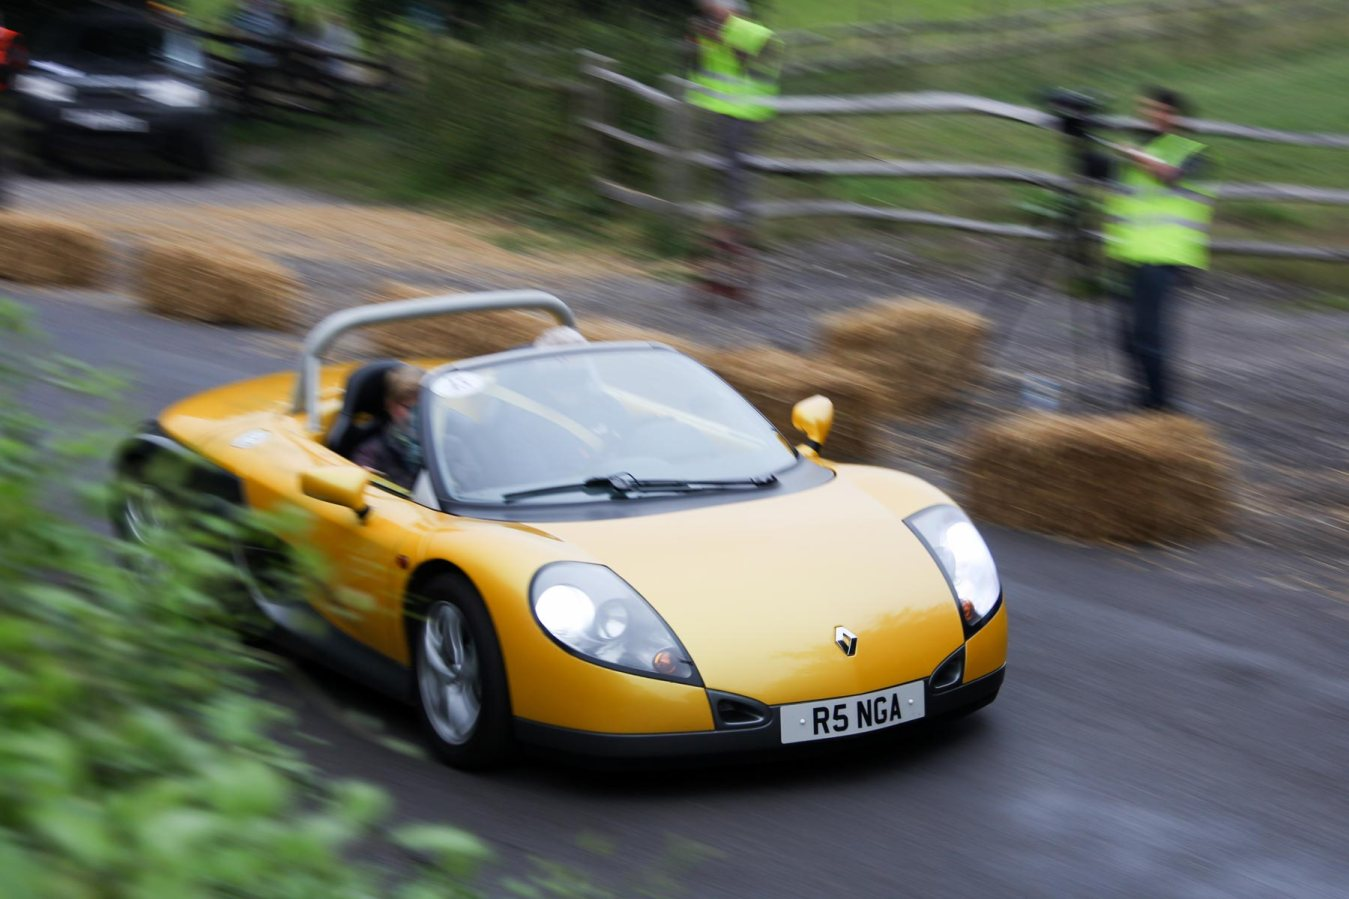 McLaren F1 designer to open this weekend's Shere Hill Climb